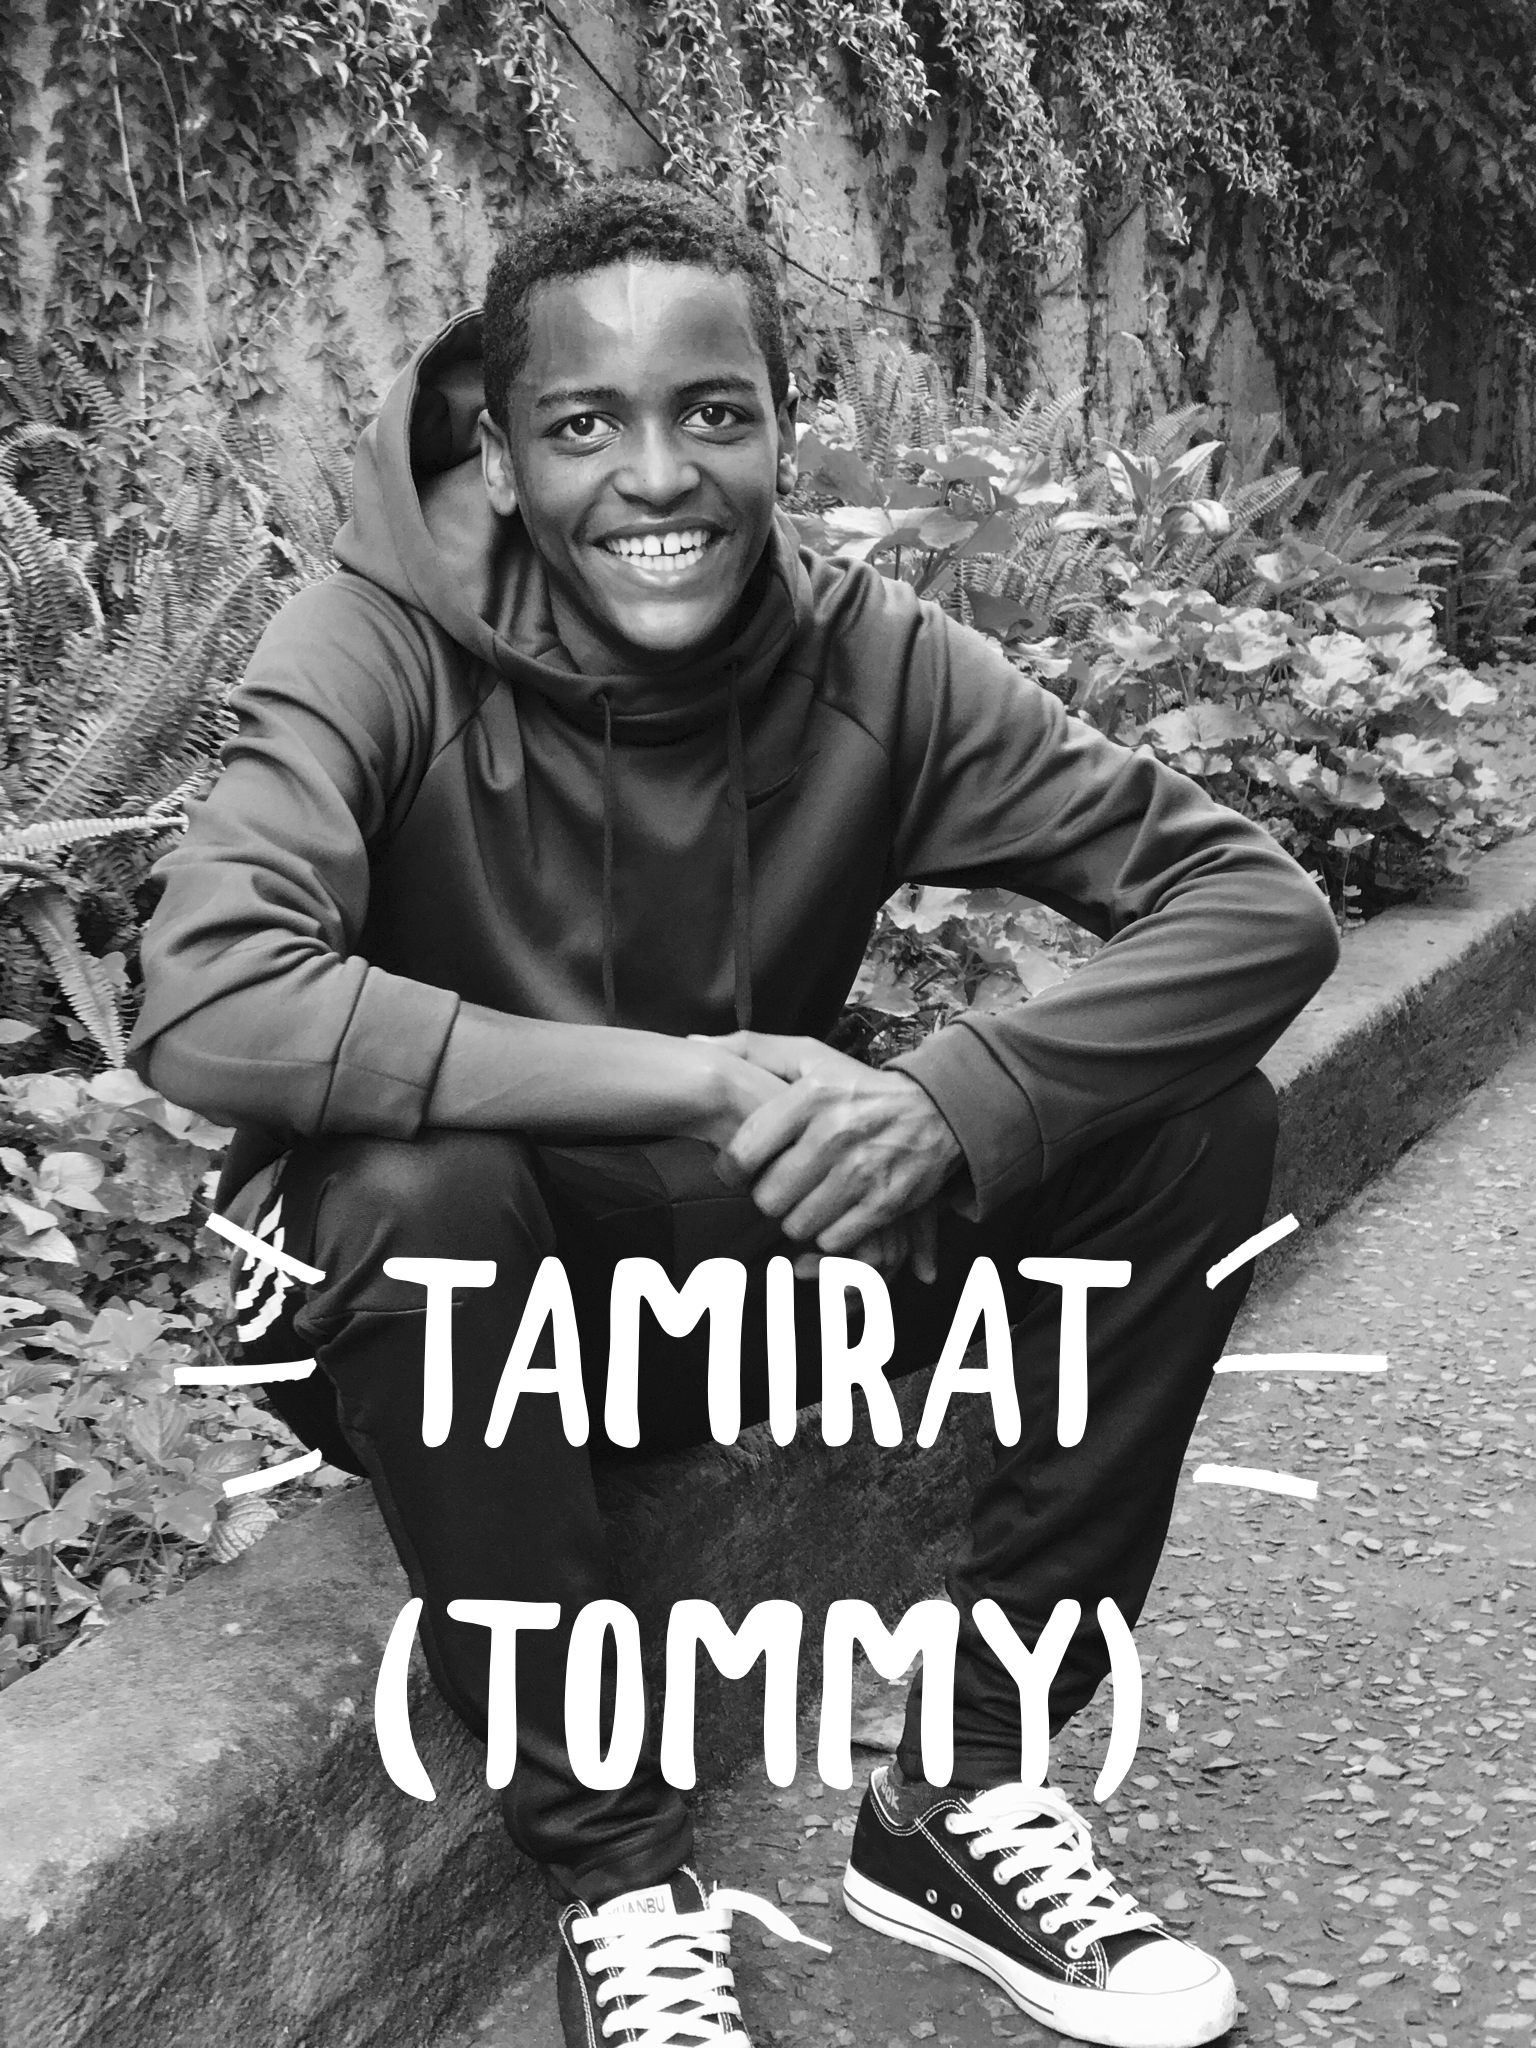 Meet Tamirat aka (Tommy) . This boy is pure sunshine. He always has a smile on his face and keeps everyone laughing. Tommy works hard in school and is growing into such a great leader. He has a big heart for people and is one of our greatest helpers. Please consider sponsoring.YOU truly can make a difference in the life of a child!